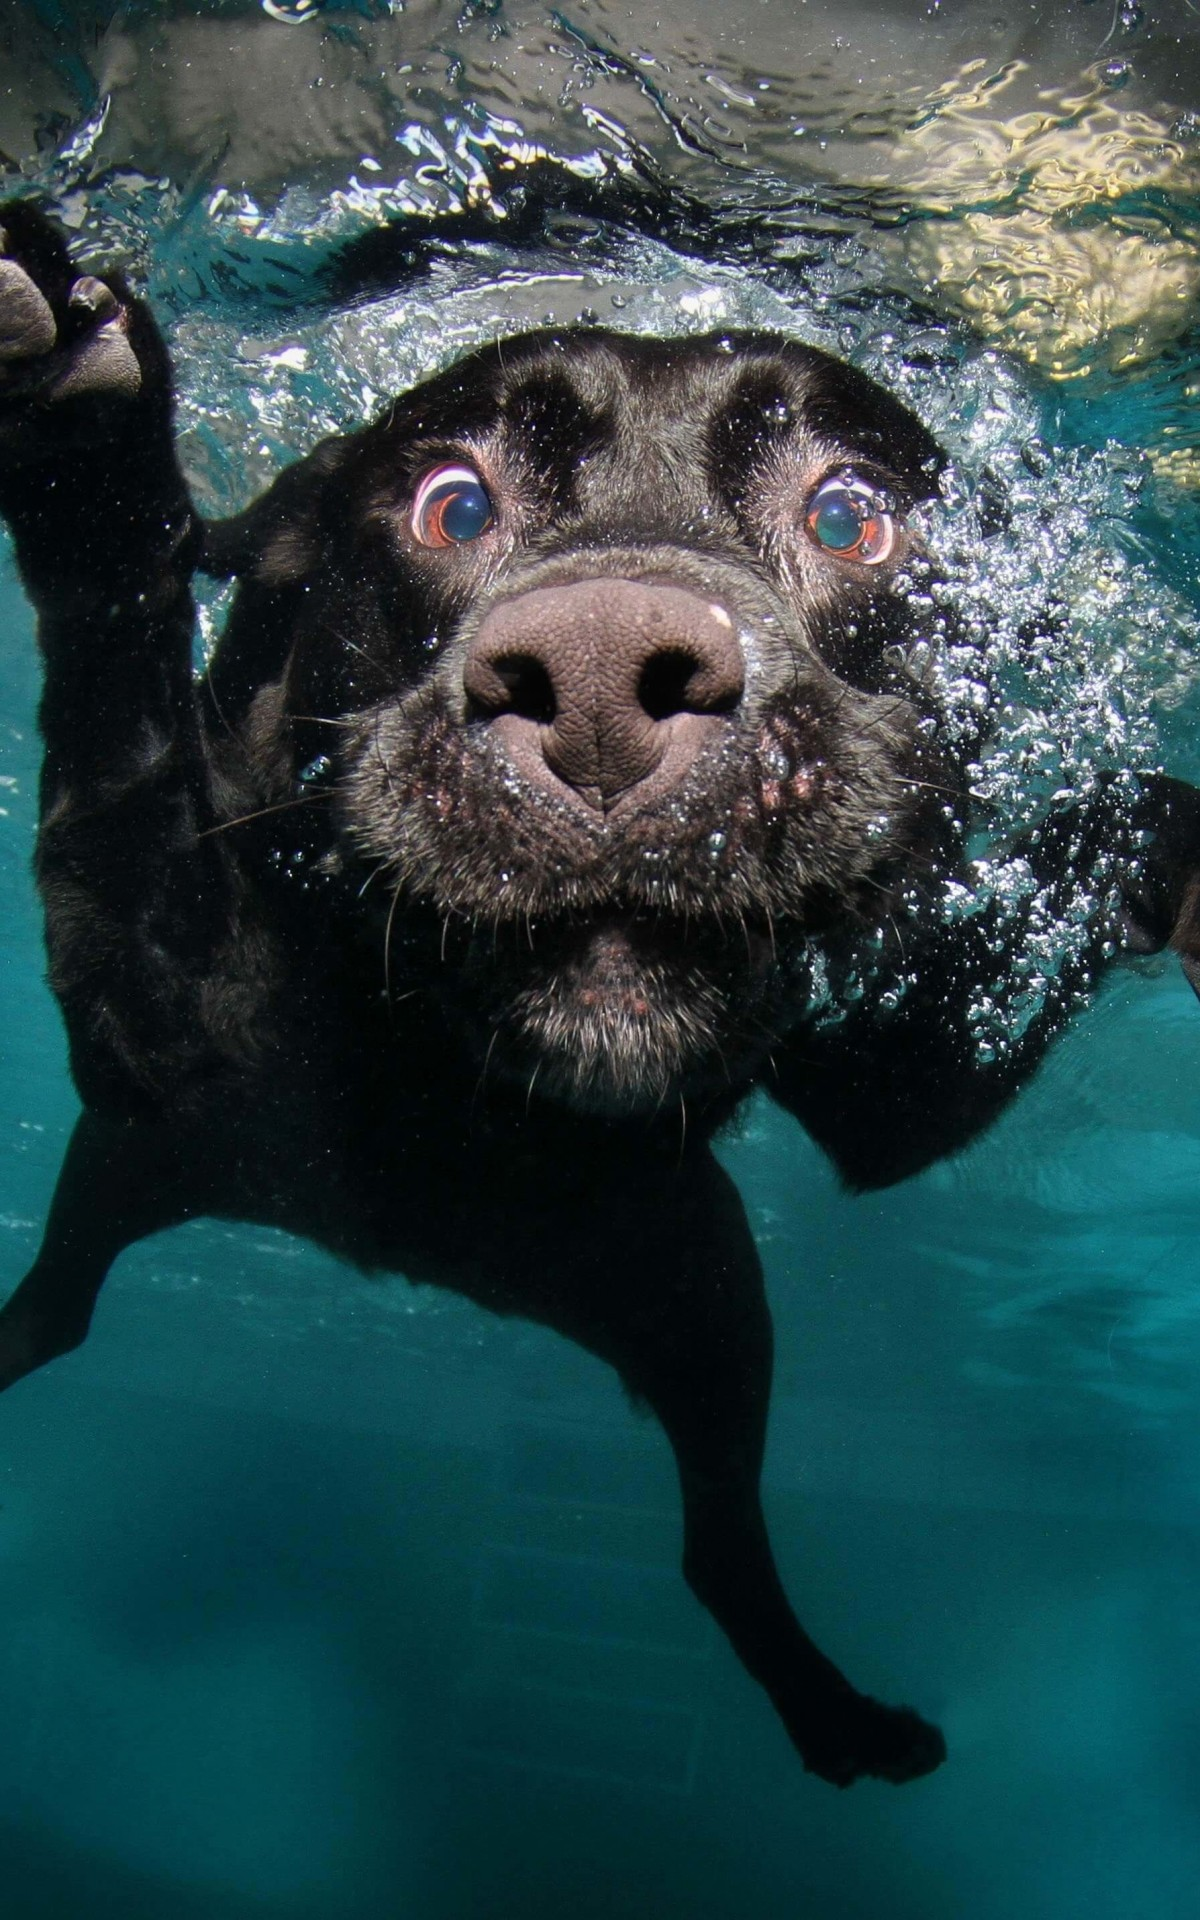 Underwater Dog Wallpaper for Amazon Kindle Fire HDX